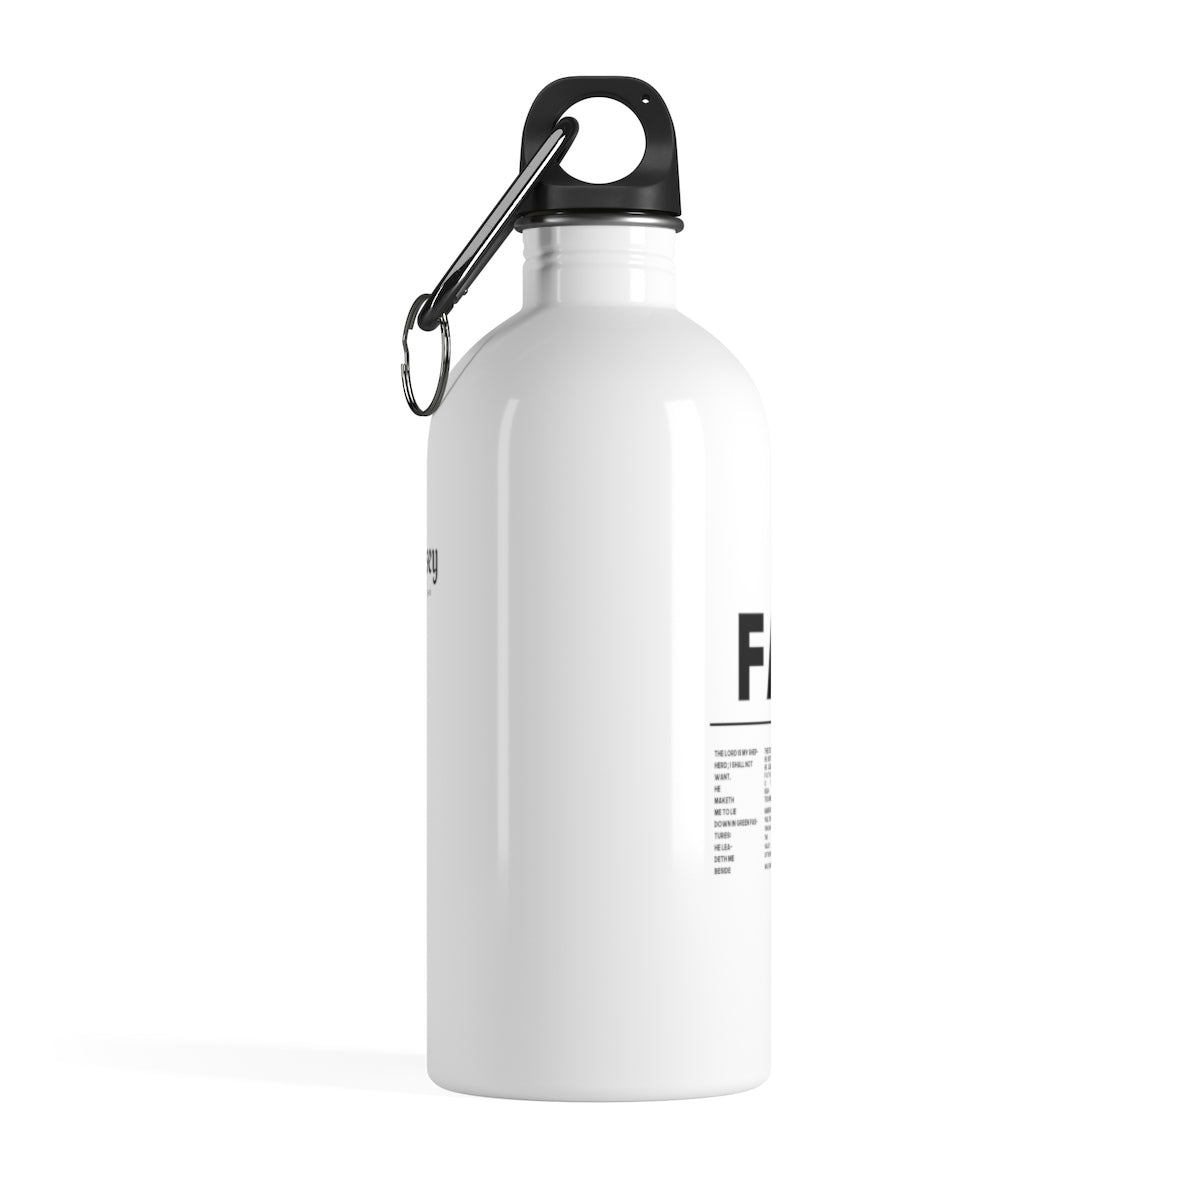 Odyssey Faith Over Fear Stainless Steel Bottle - Mug - Odyssey By Yendi